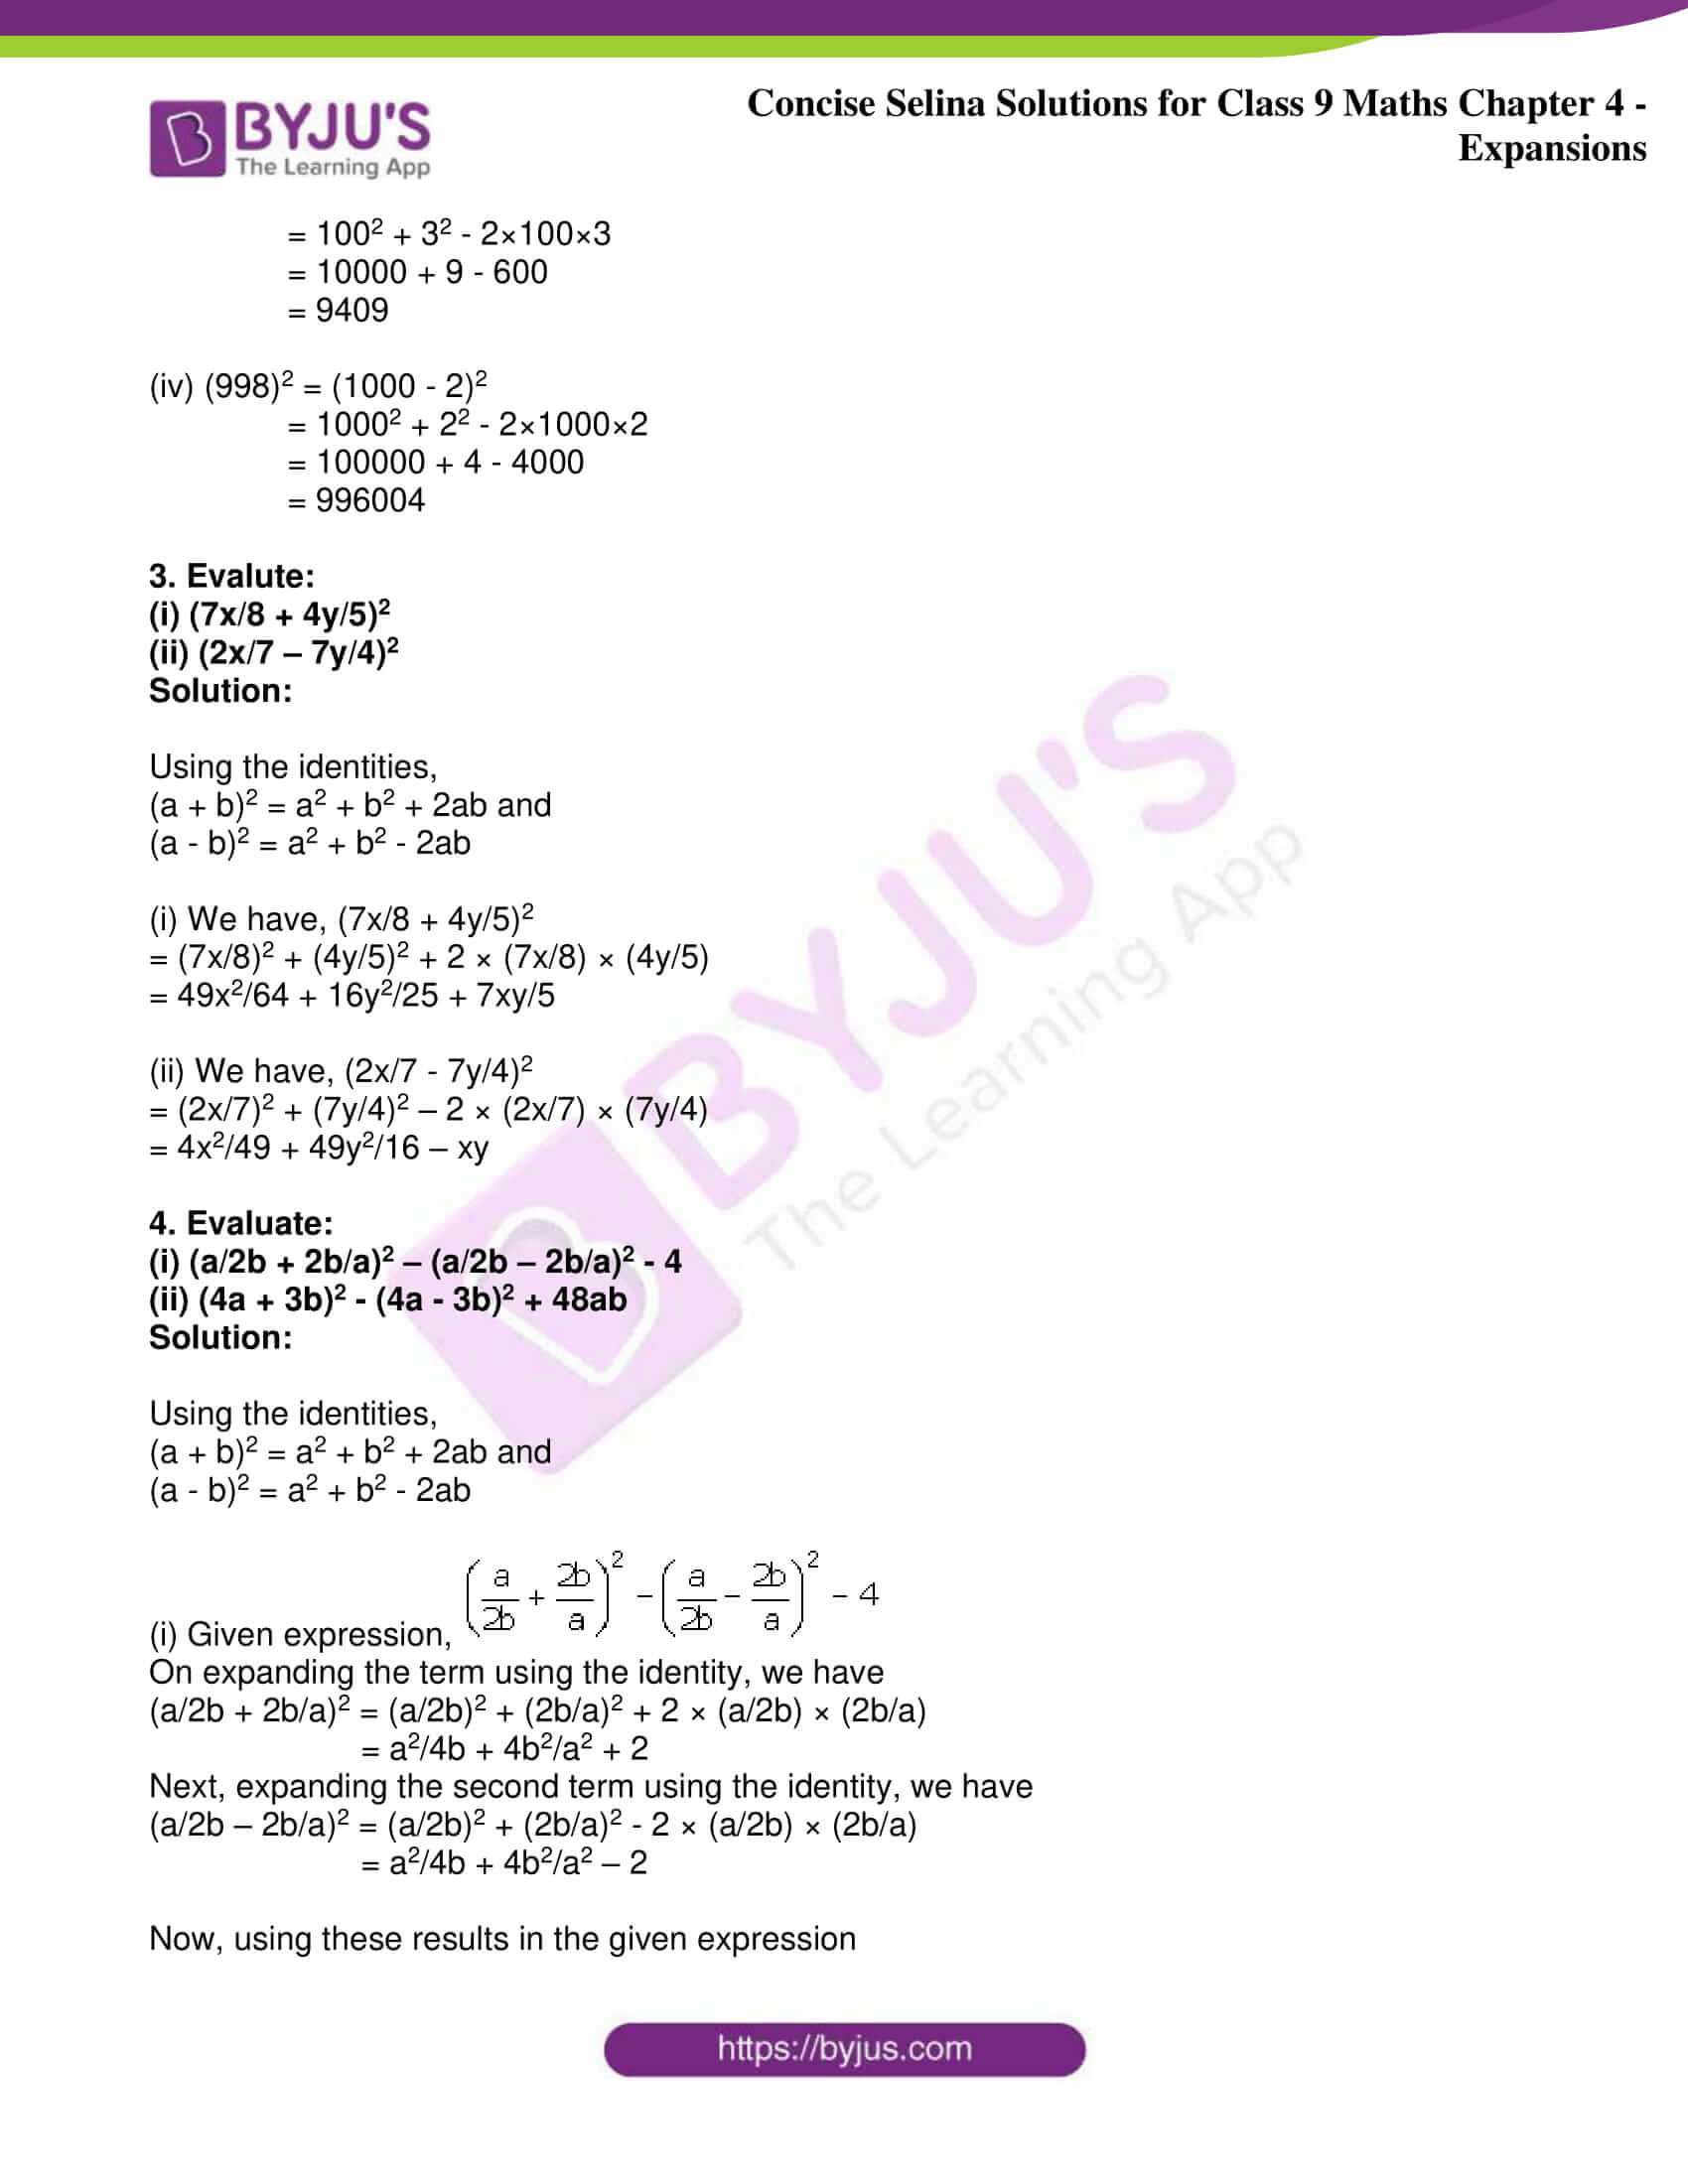 icse class 9 maths may10 selina solutions chapter 4 expansions 02